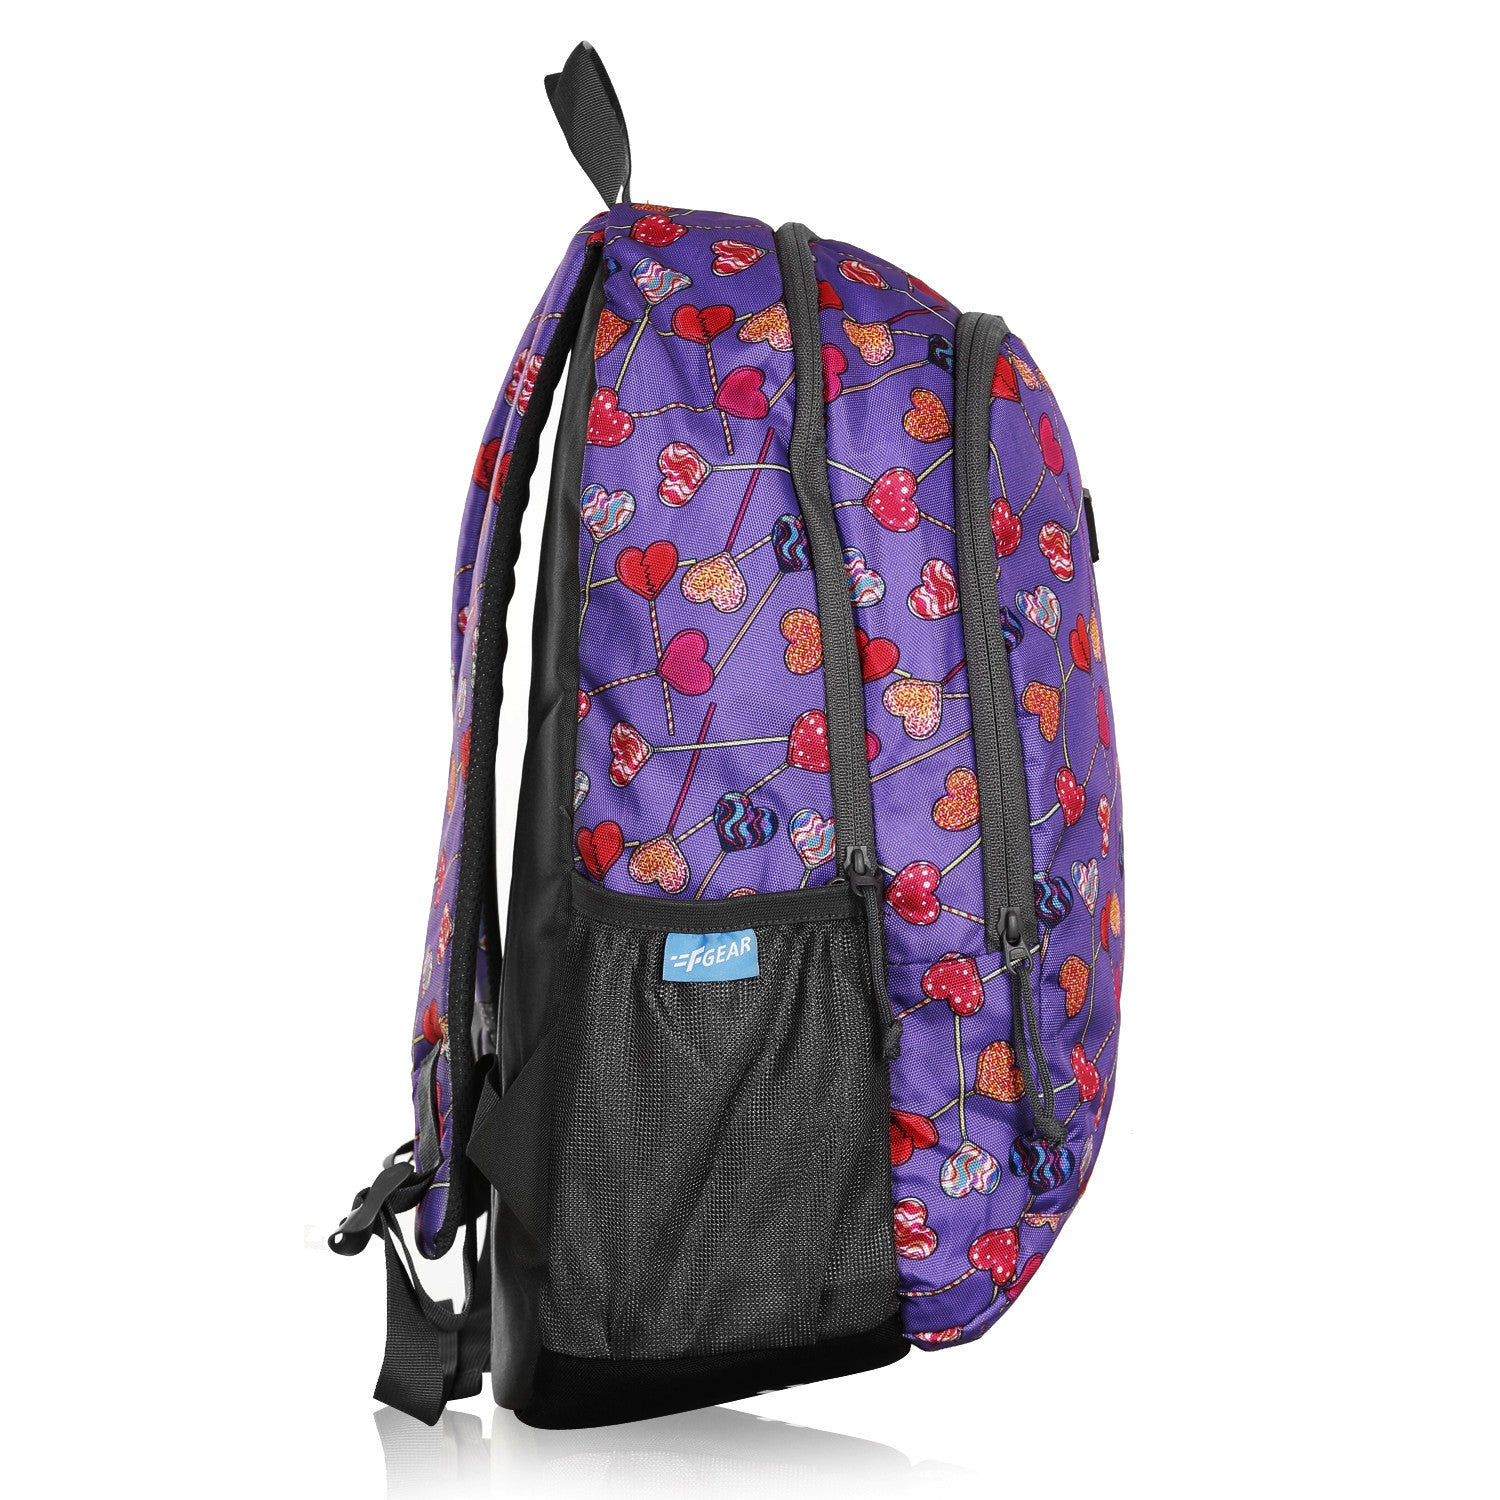 F Gear Castle Hearts Violet  22 L Polyester Backpack (3348)